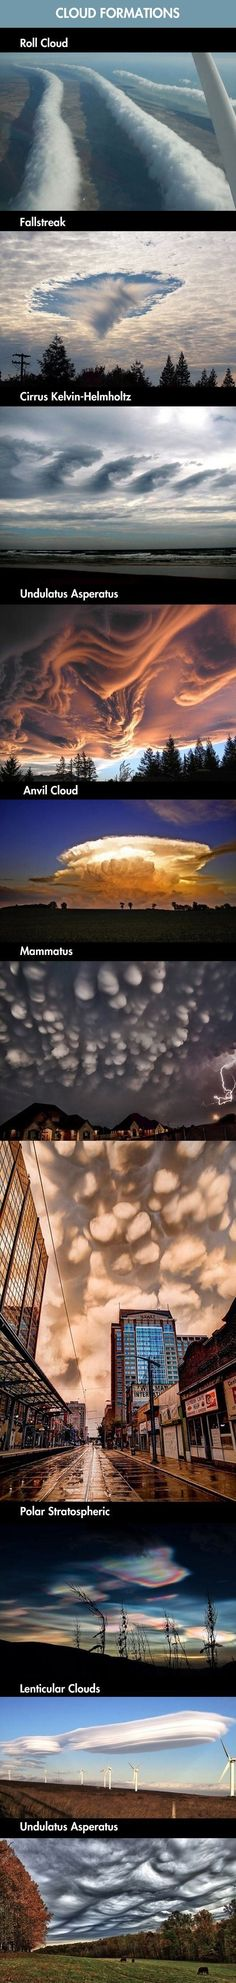 Incredible Cloud Formations... wow they're all so pretty. I've never seen a cloud that looks like those